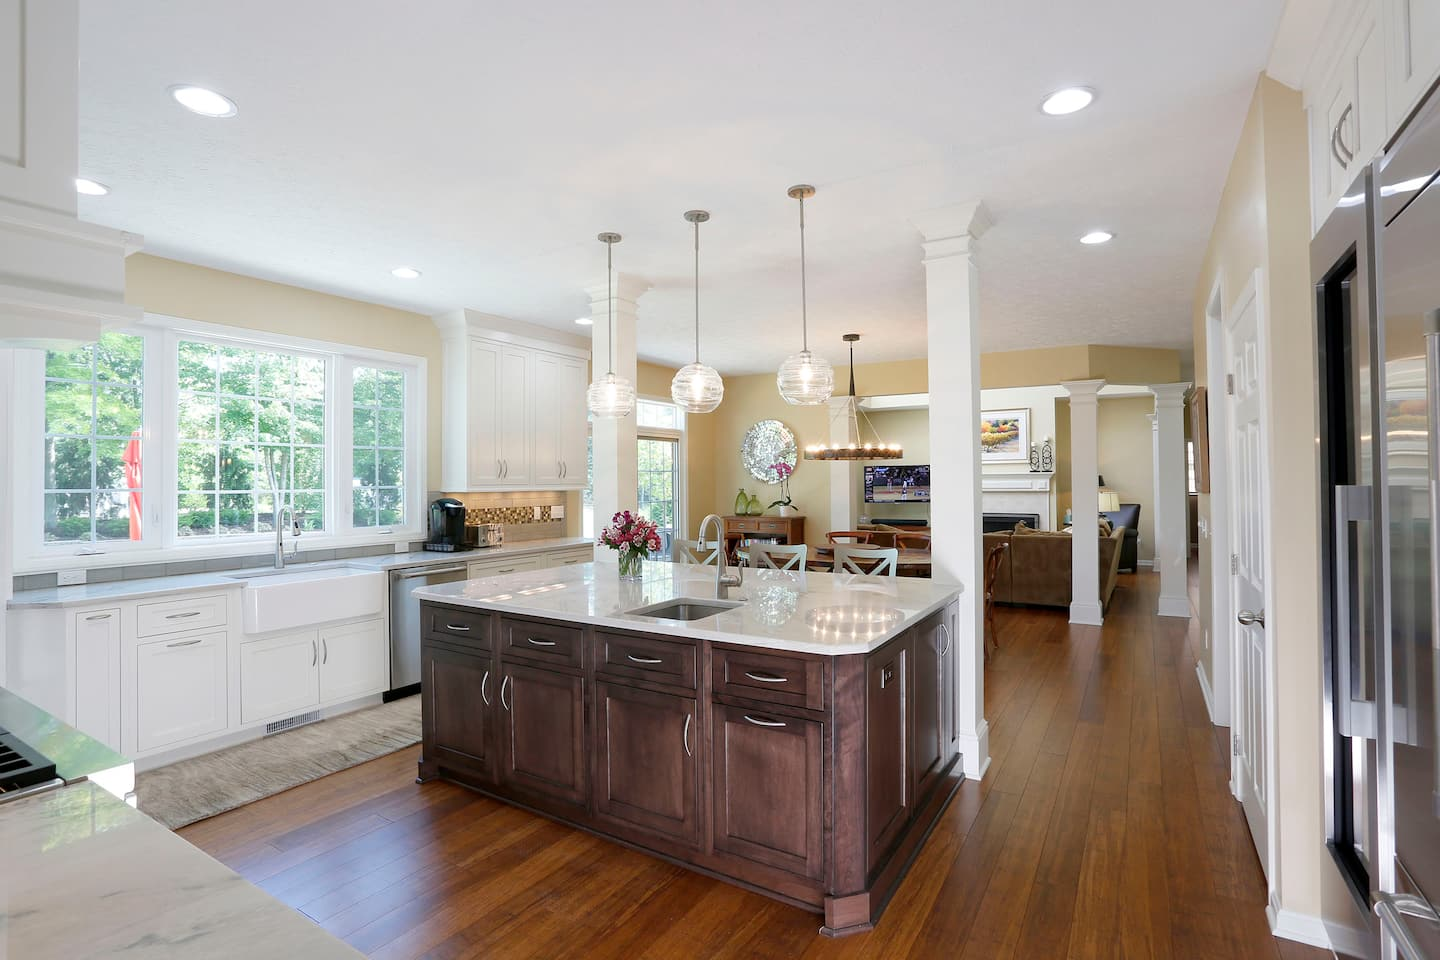 How Real Life Remodeling Differs from TV Shows